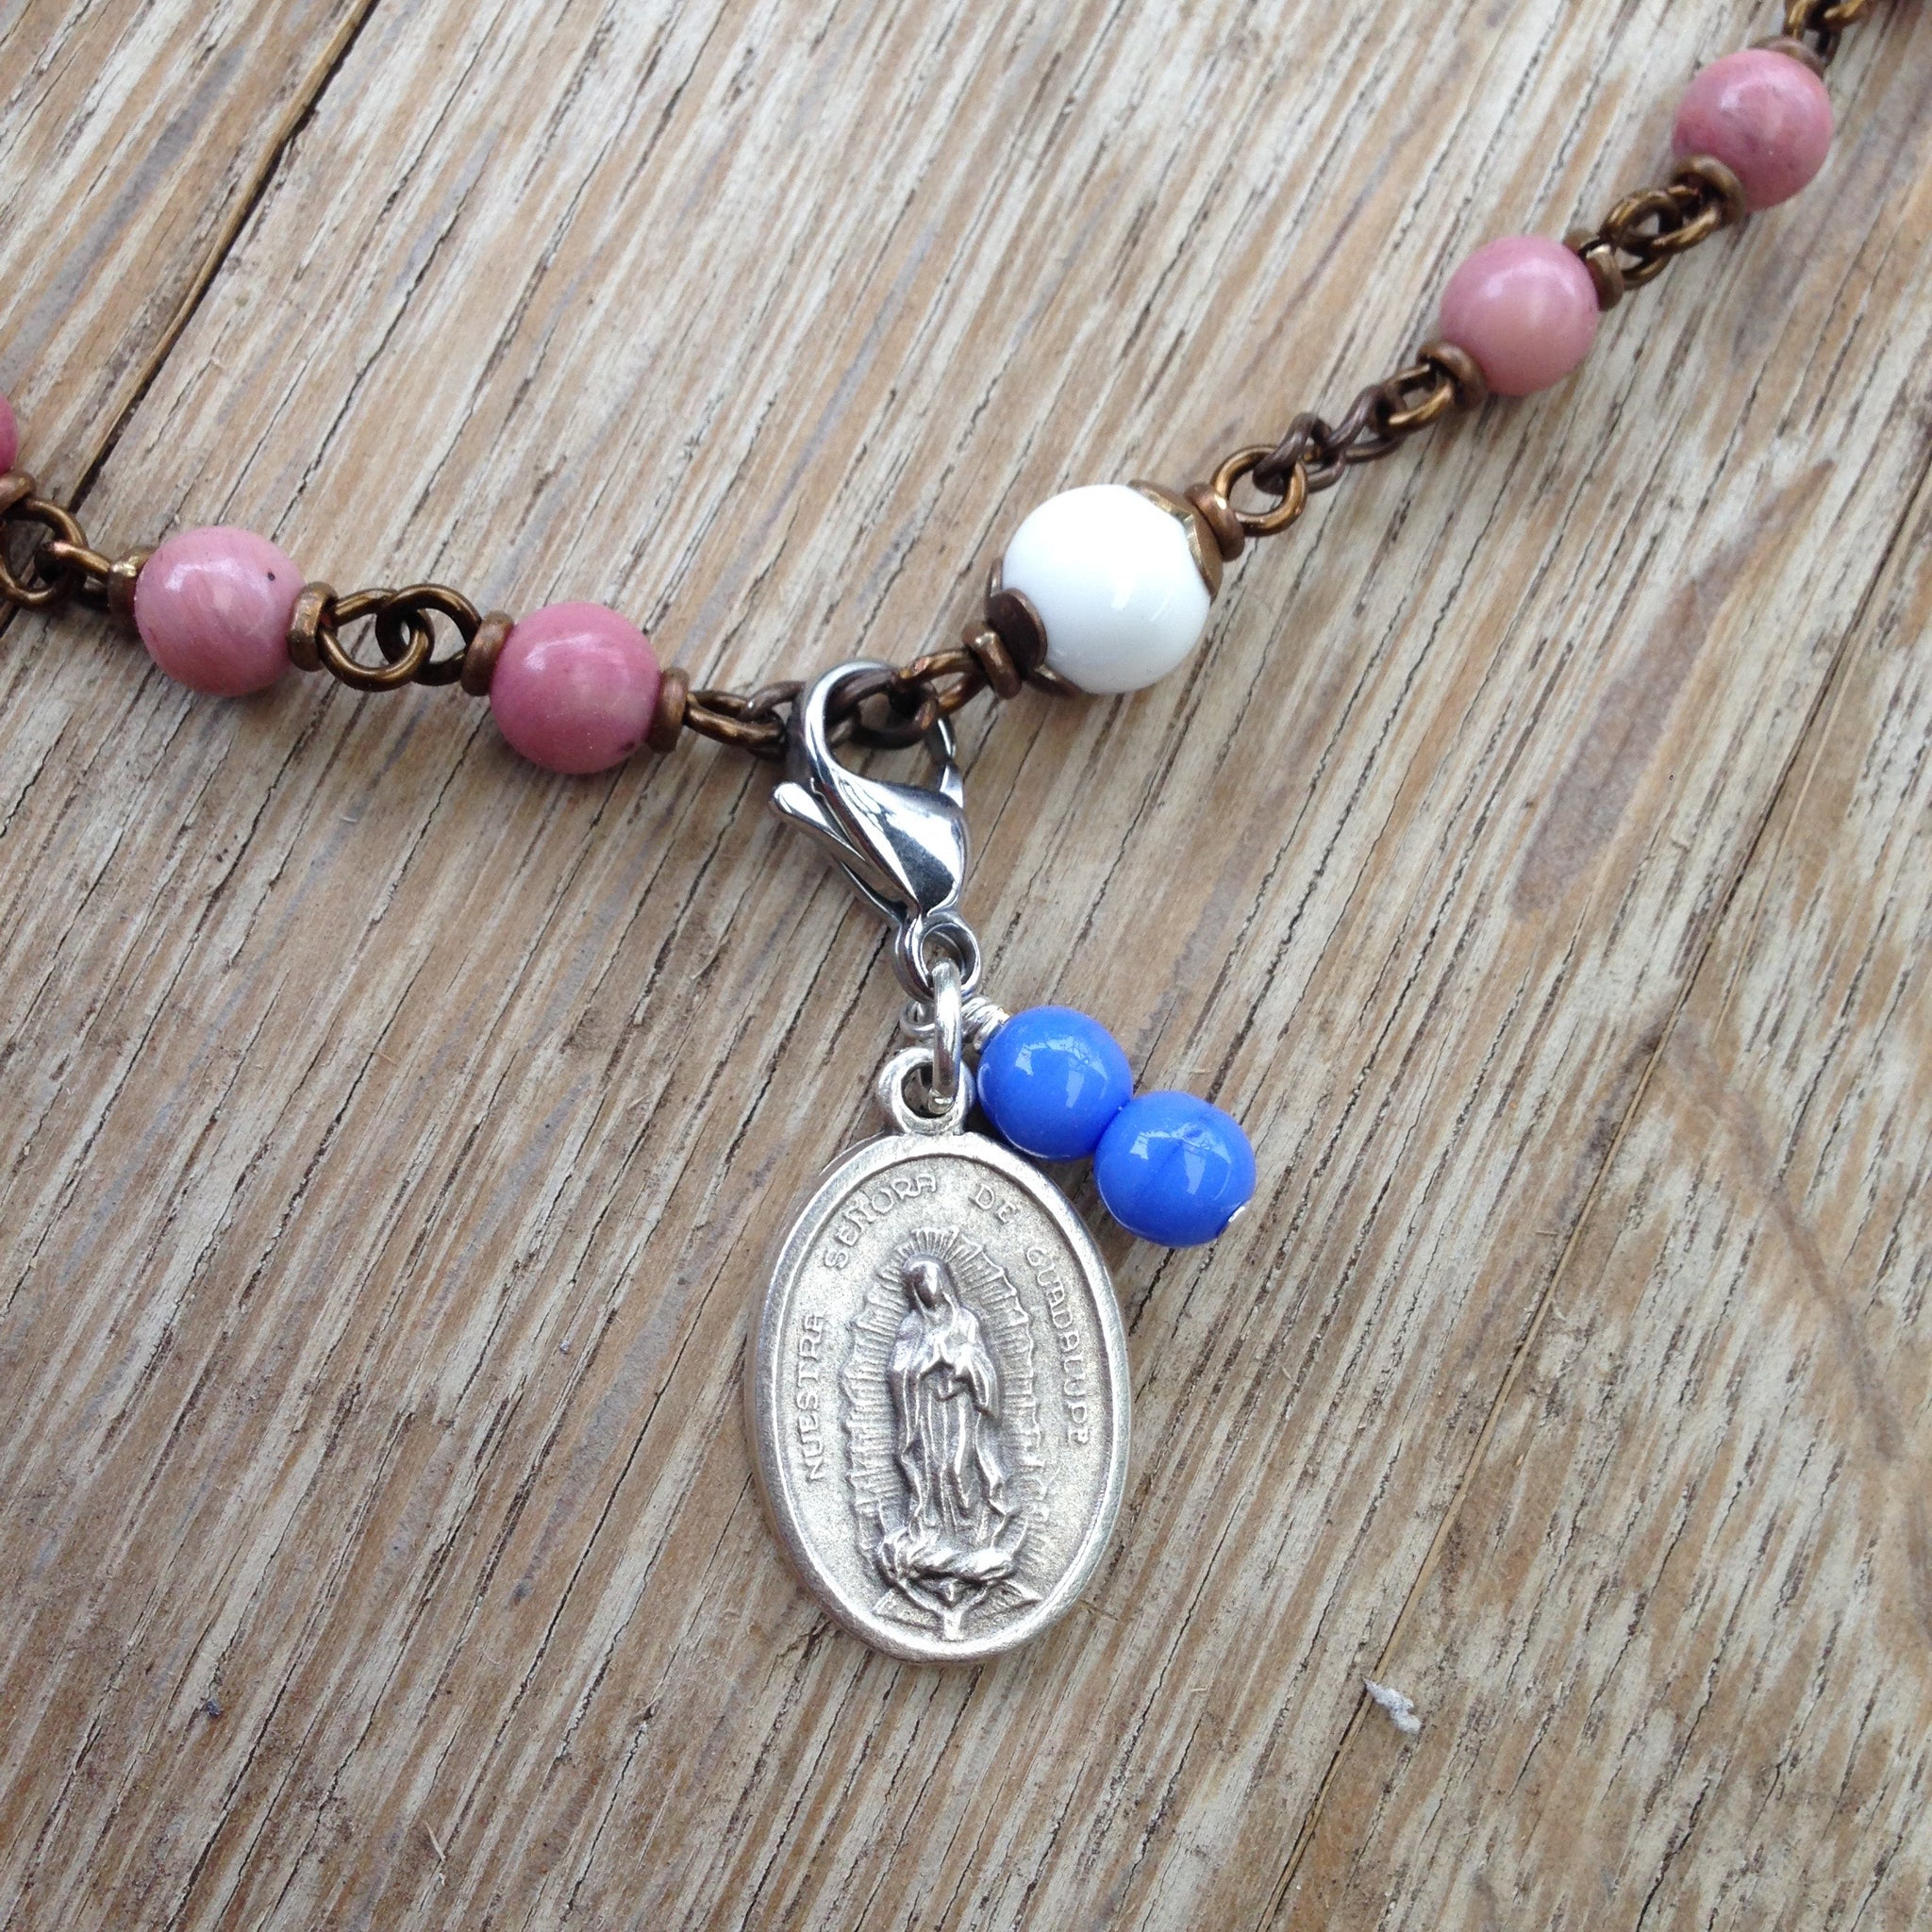 Our Lady of Guadalupe Rosary Marker